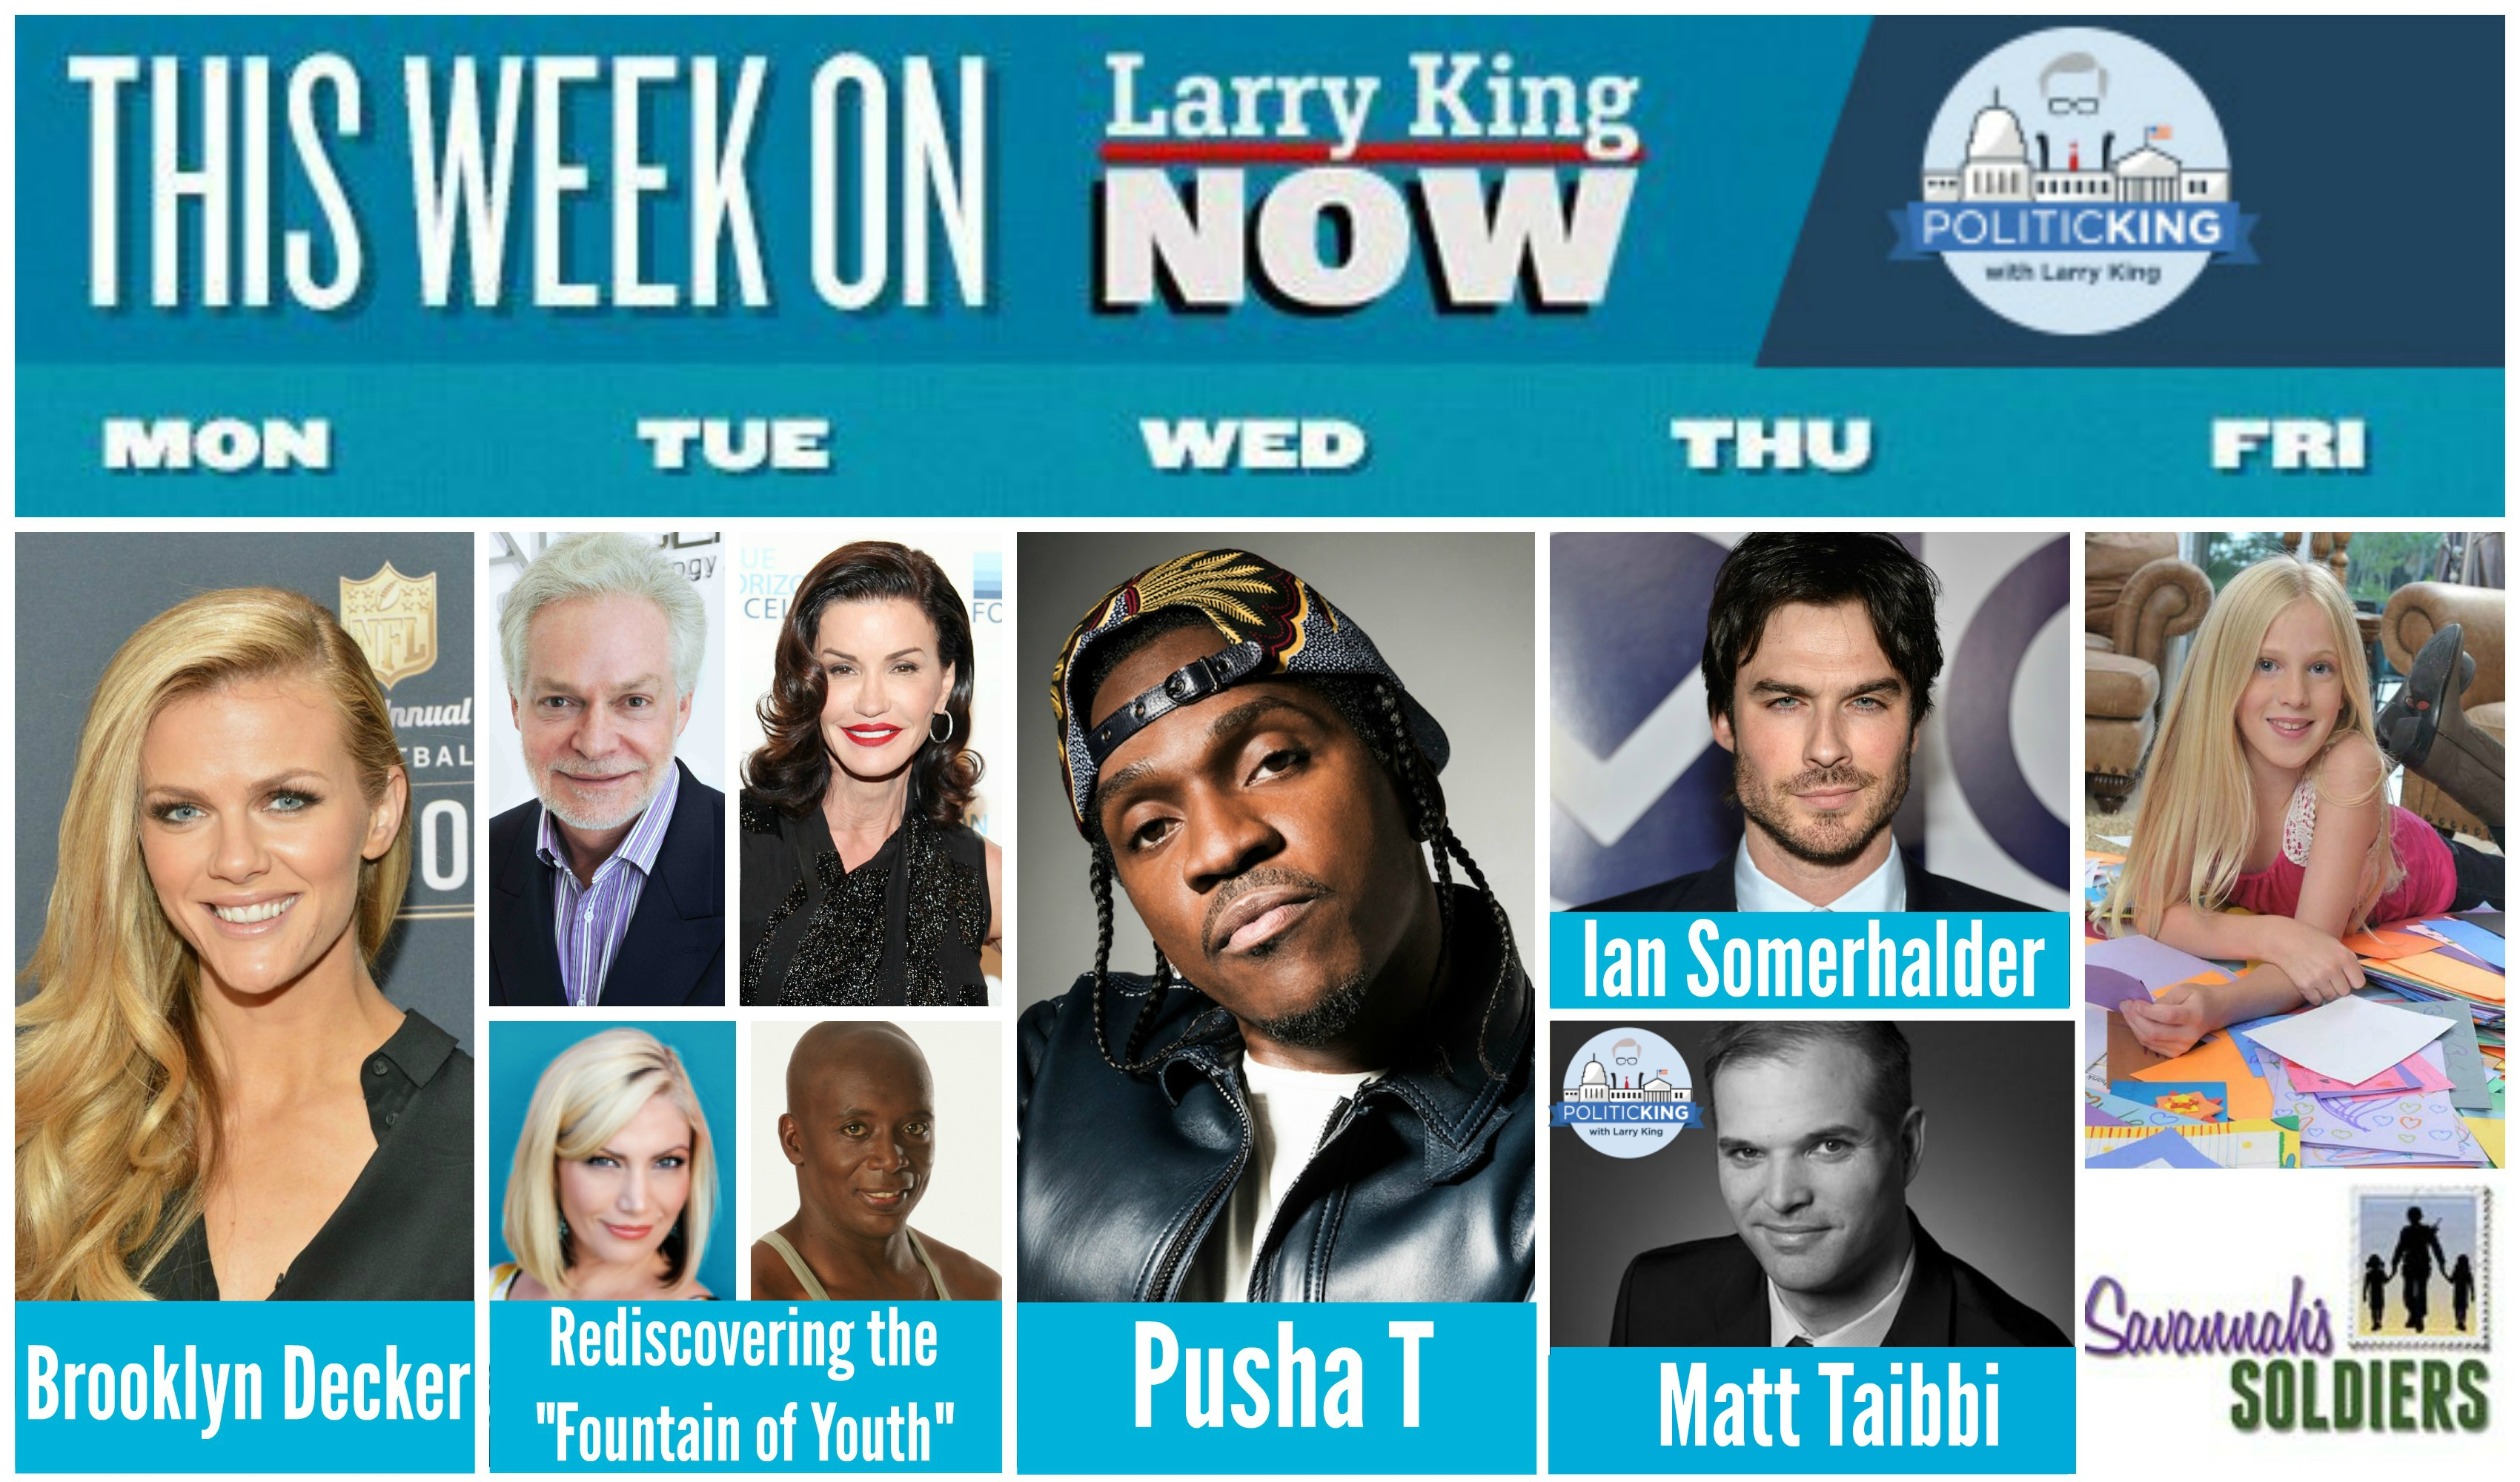 This Week on Larry King Now: Brooklyn Decker, Pusha T, Ian Somerhalder + Politicking with Matt Taibbi